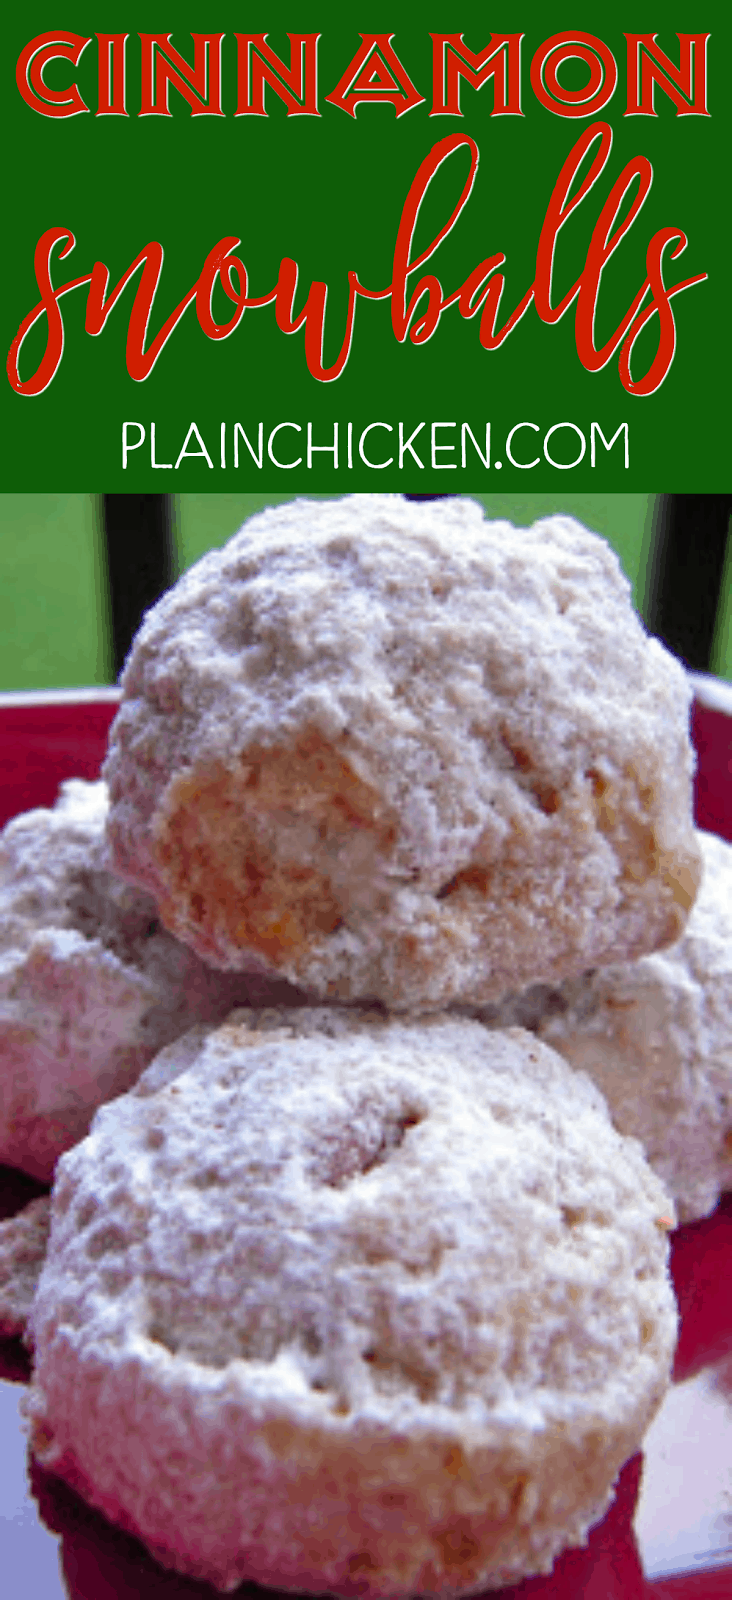 Cinnamon Snowballs - my favorite holiday cookie! Butter, sugar, vanilla, cinnamon, cake flour, corn flakes, pecans and powdered sugar. Makes a lot so these are great for cookie swaps and holiday parties.